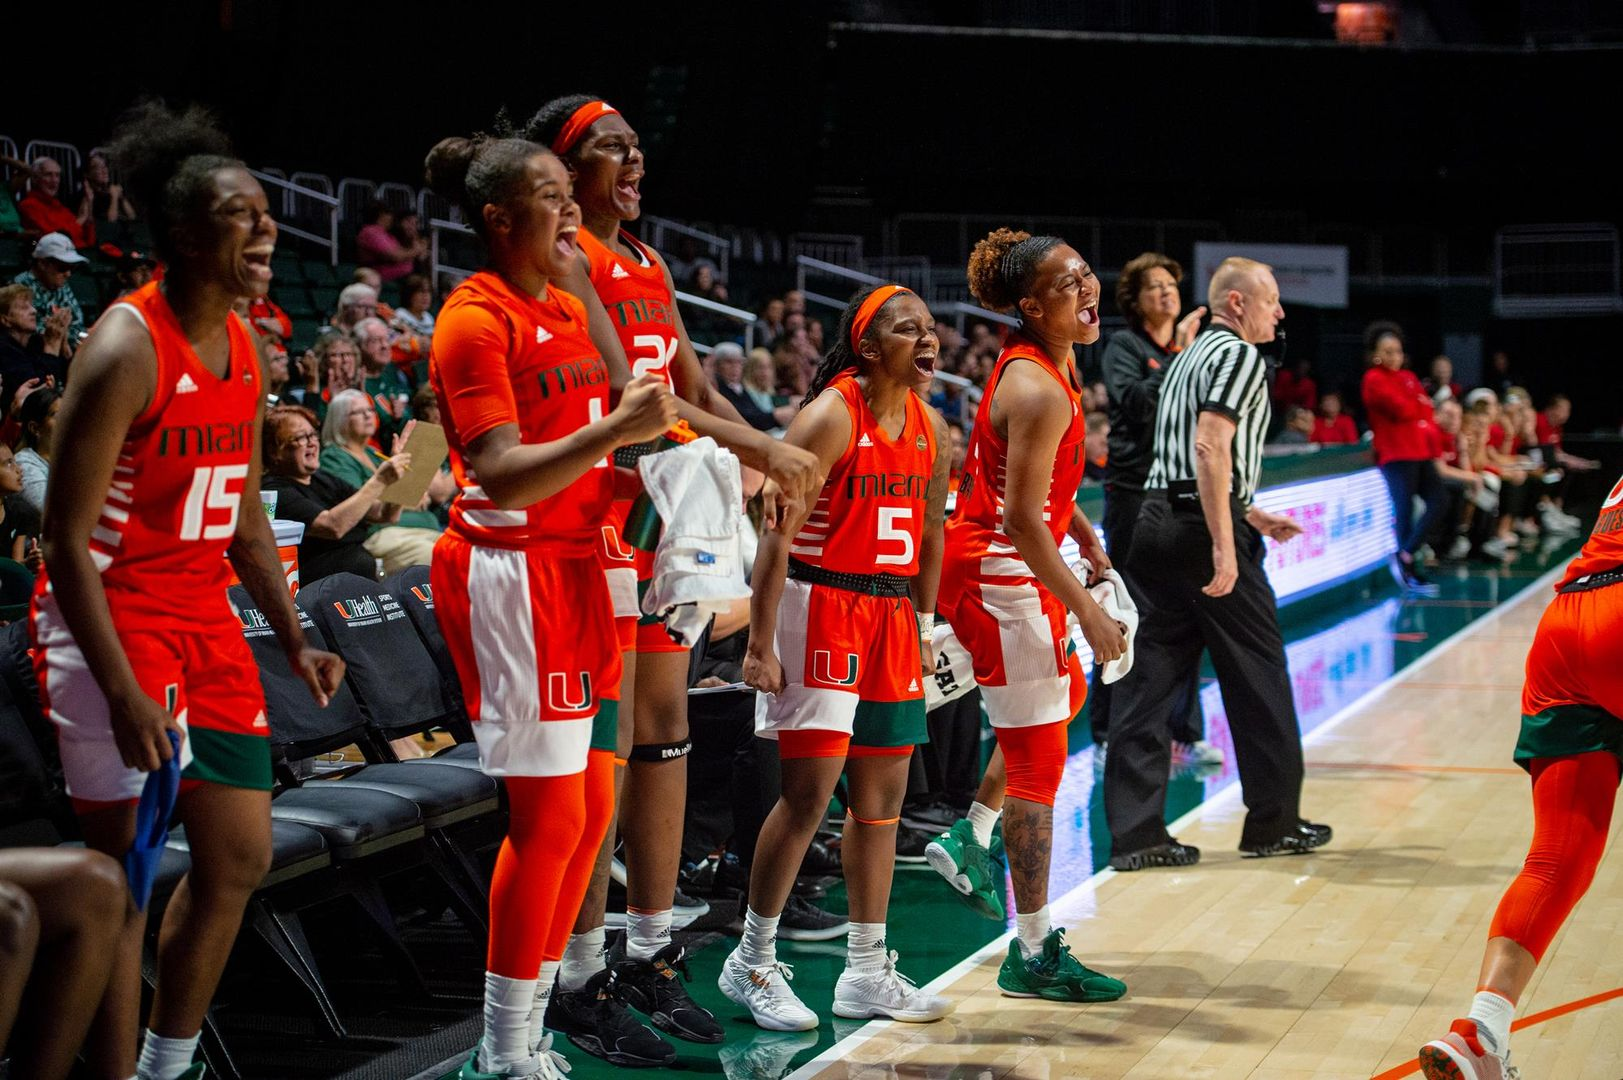 Canes Fly By Redhawks, 80-62